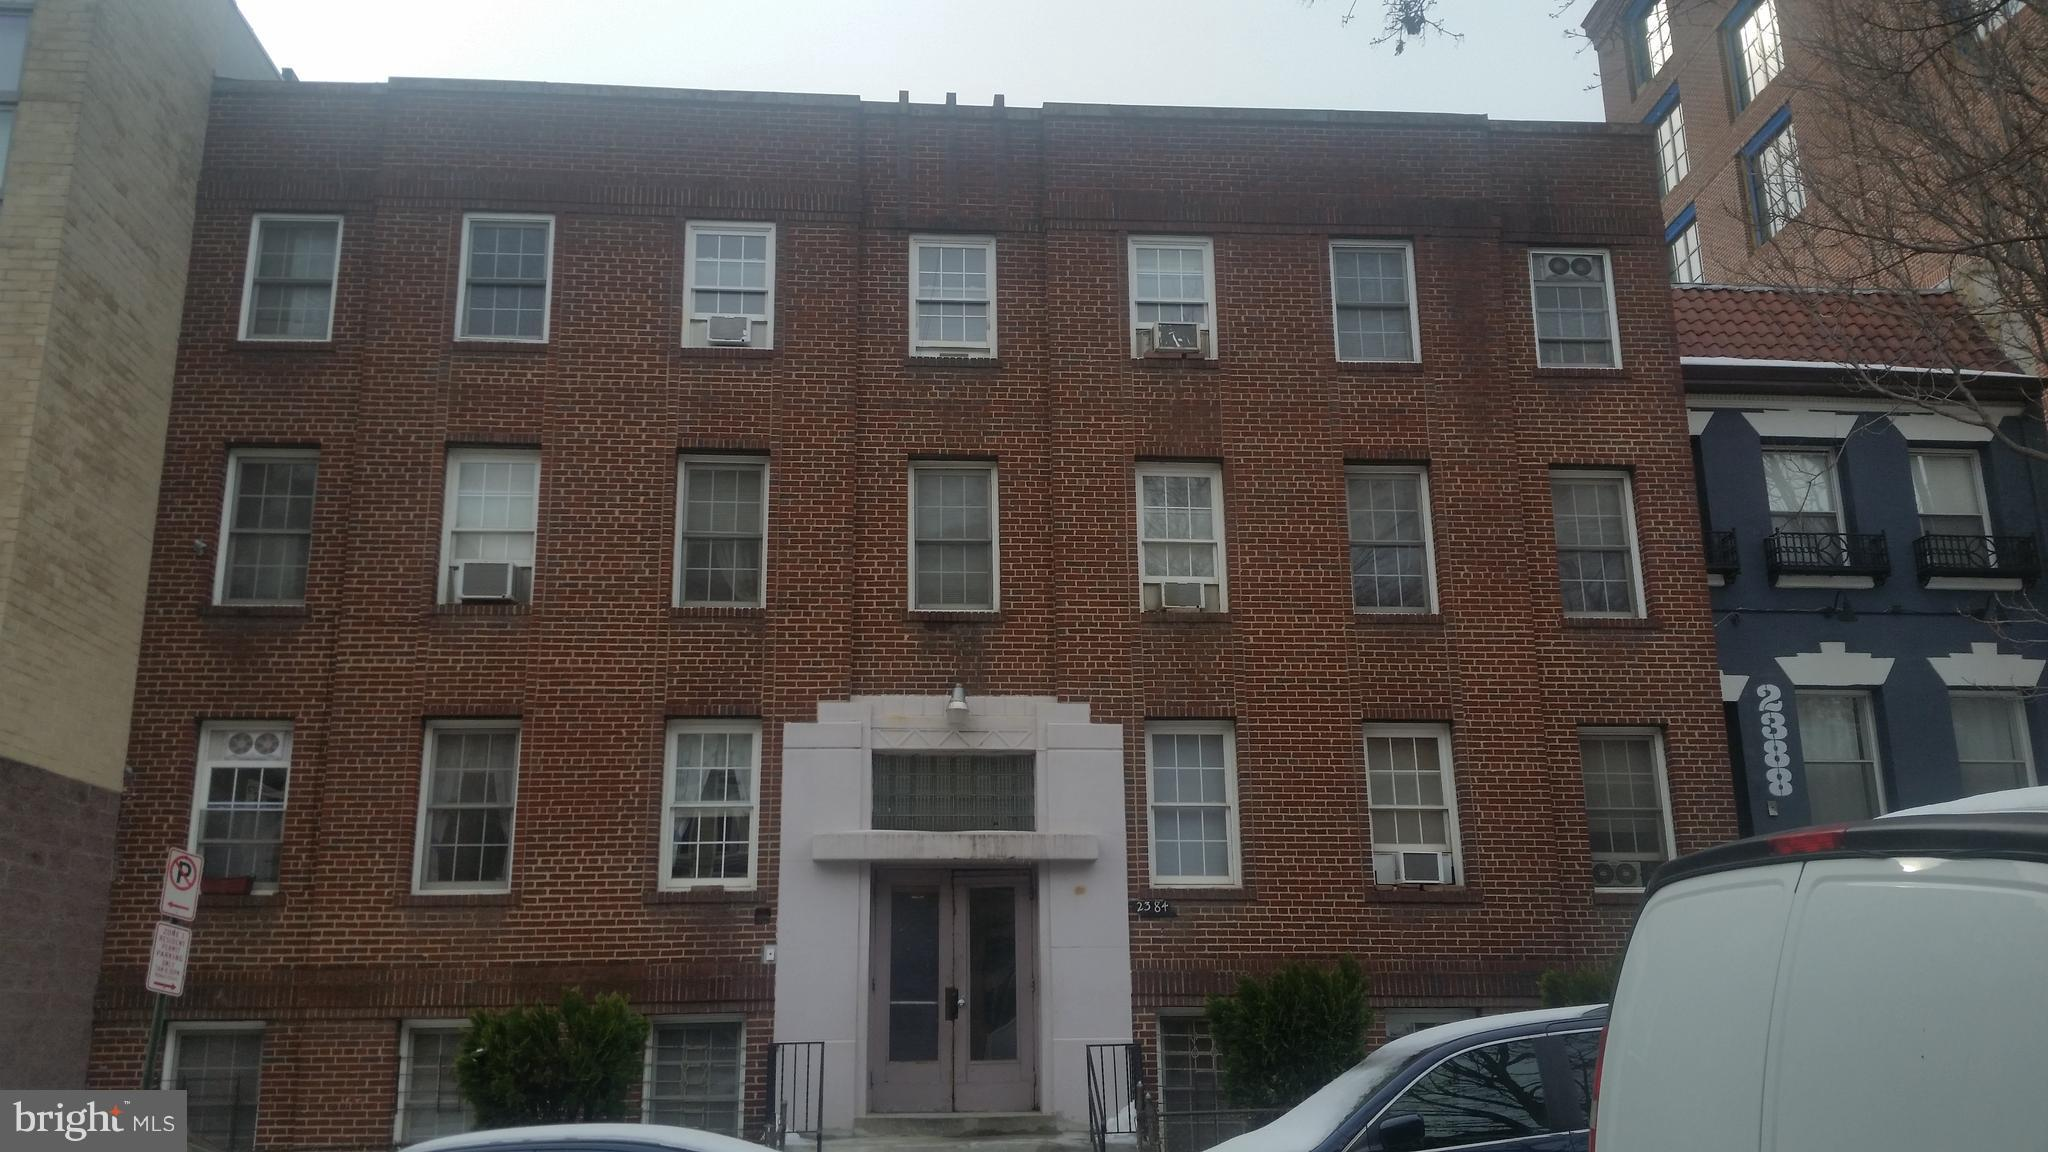 2384 CHAMPLAIN STREET NW, WASHINGTON, DC 20009